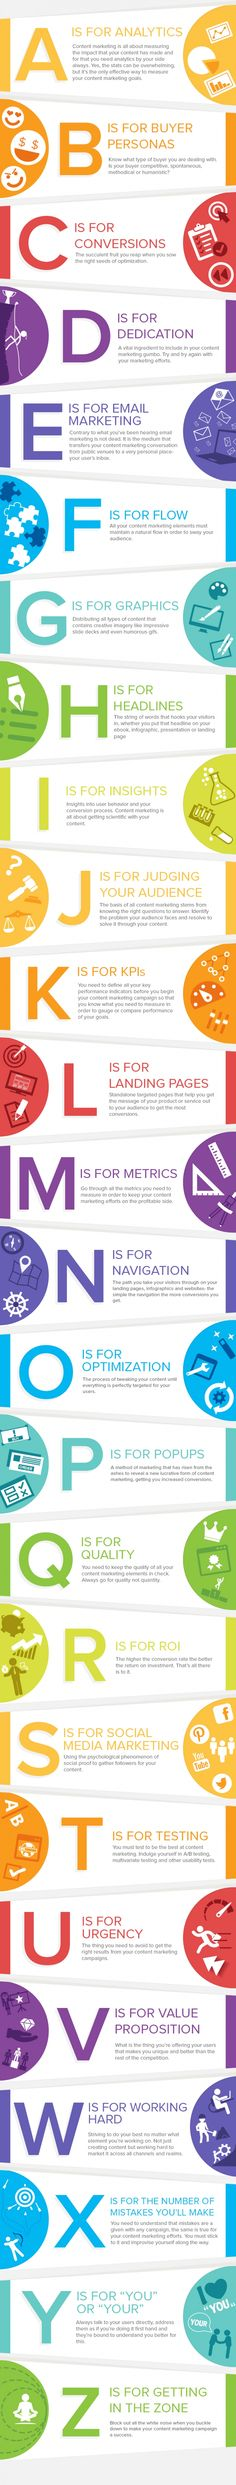 The ABC's of Content Marketing Infographic